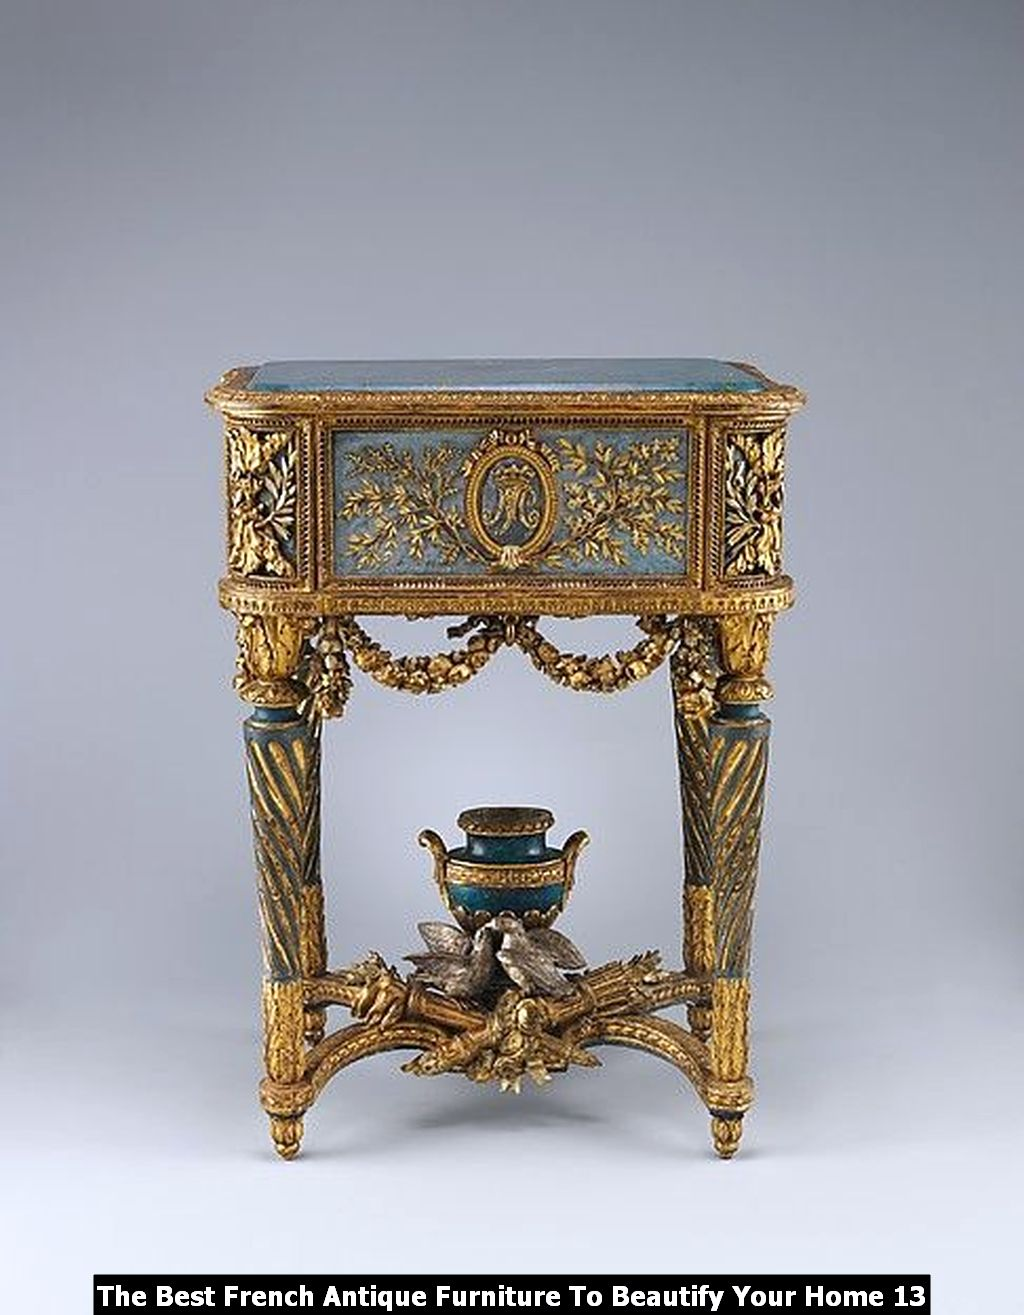 The Best French Antique Furniture To Beautify Your Home 13